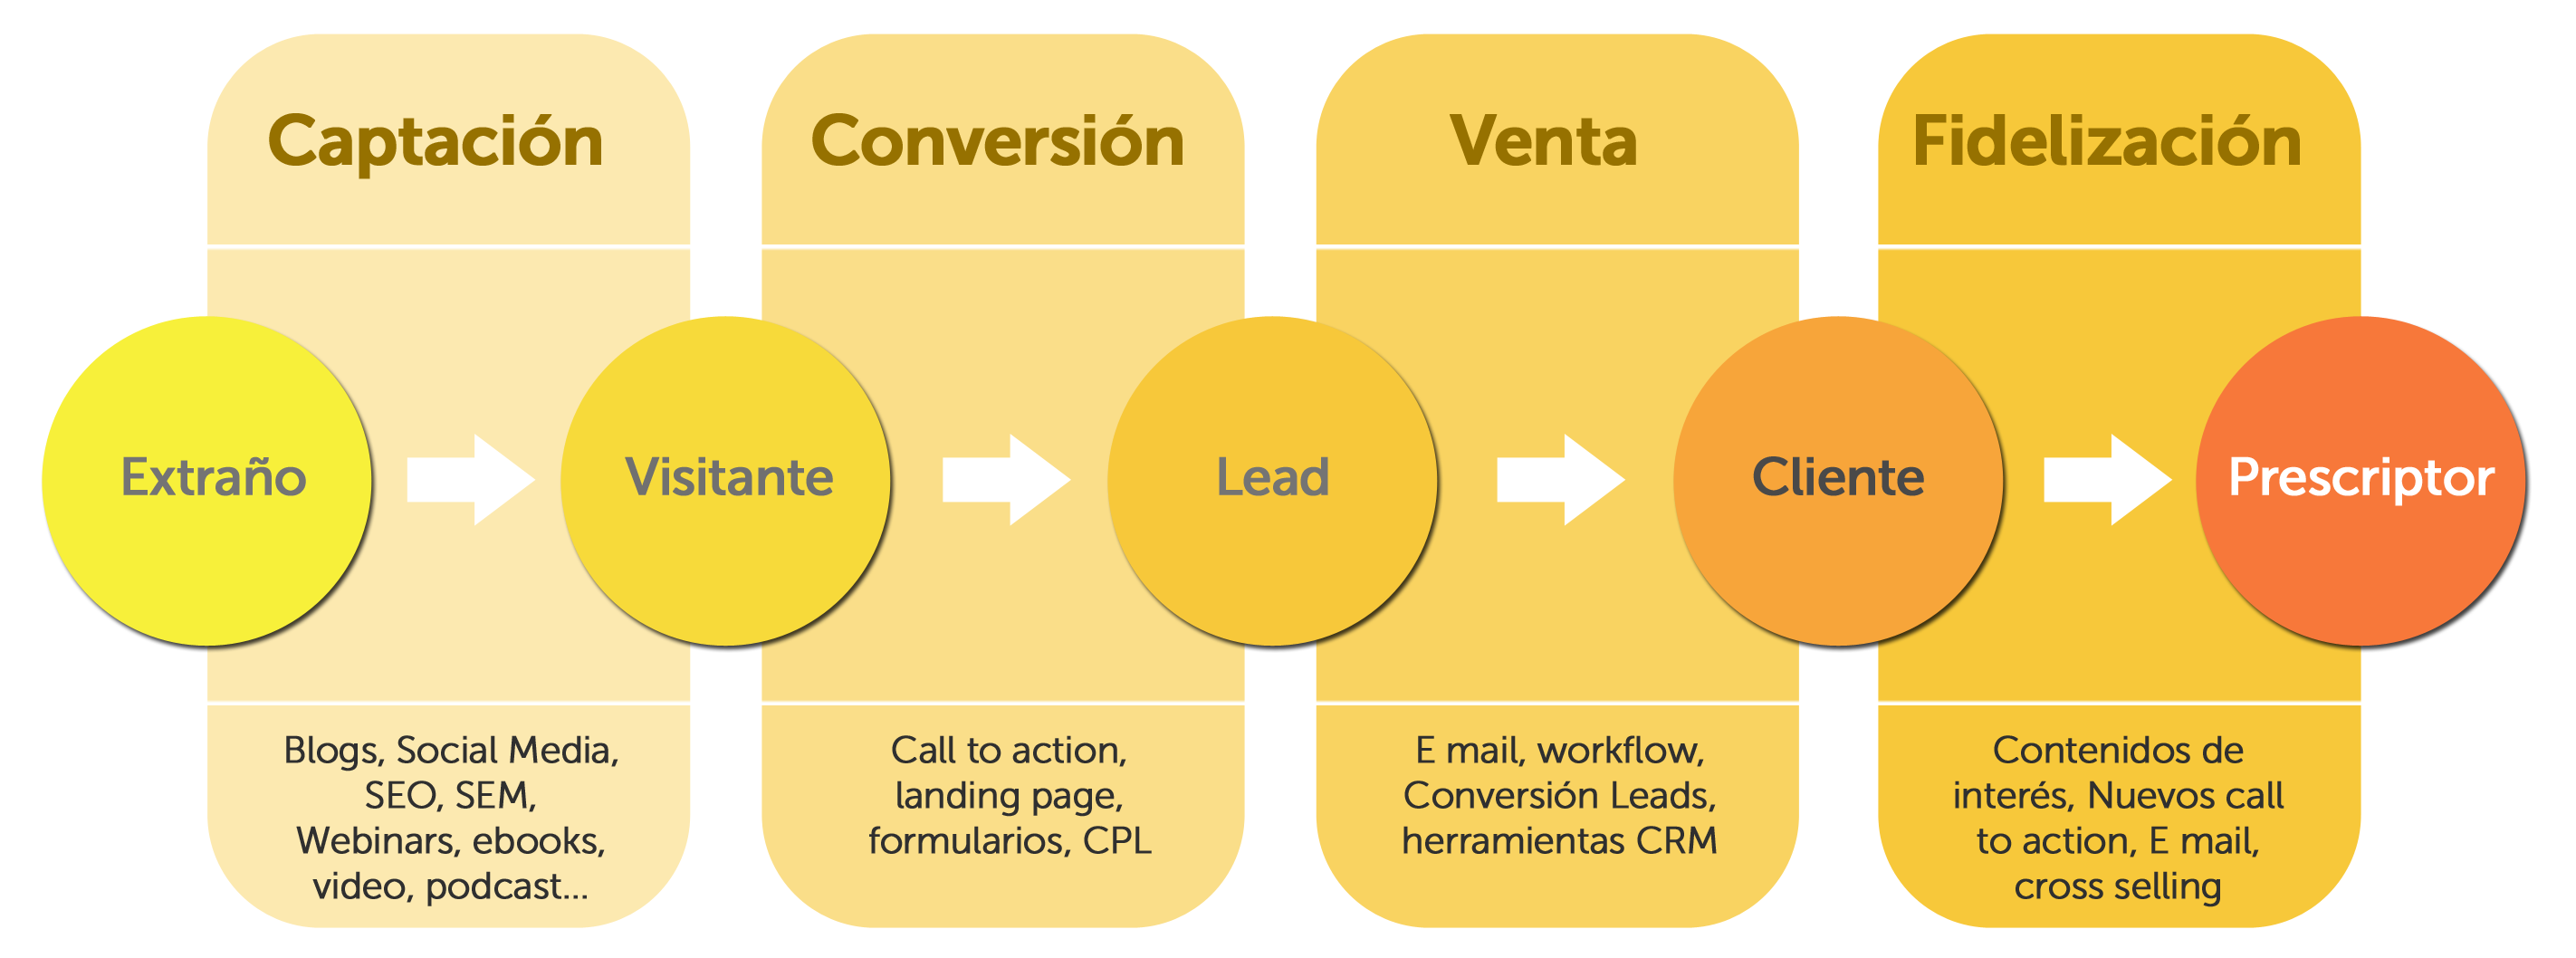 estrategia de inbound marketing mexico inbound marketing mexico 4 cosas que ayudarán a mejorar tu estrategia inbound marketing mexico Flujo Inbound Marketing